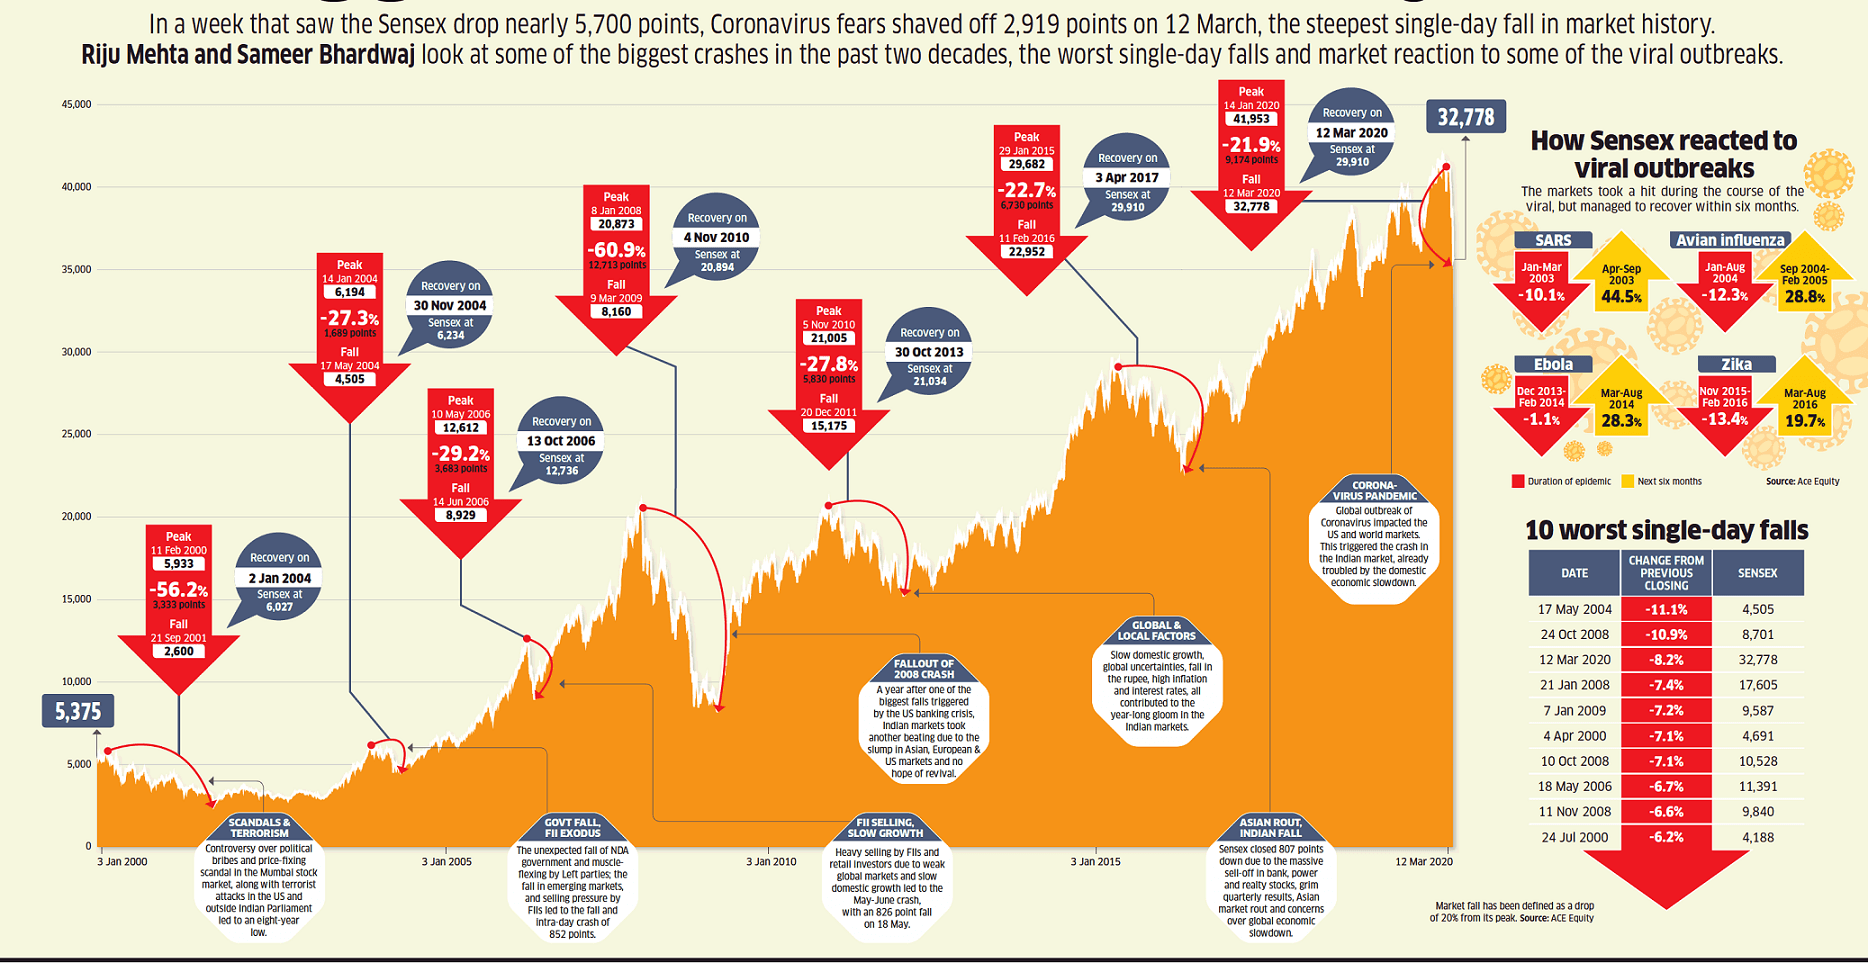 Nifty had V Shape Recovery in 2008 Financial Crisis